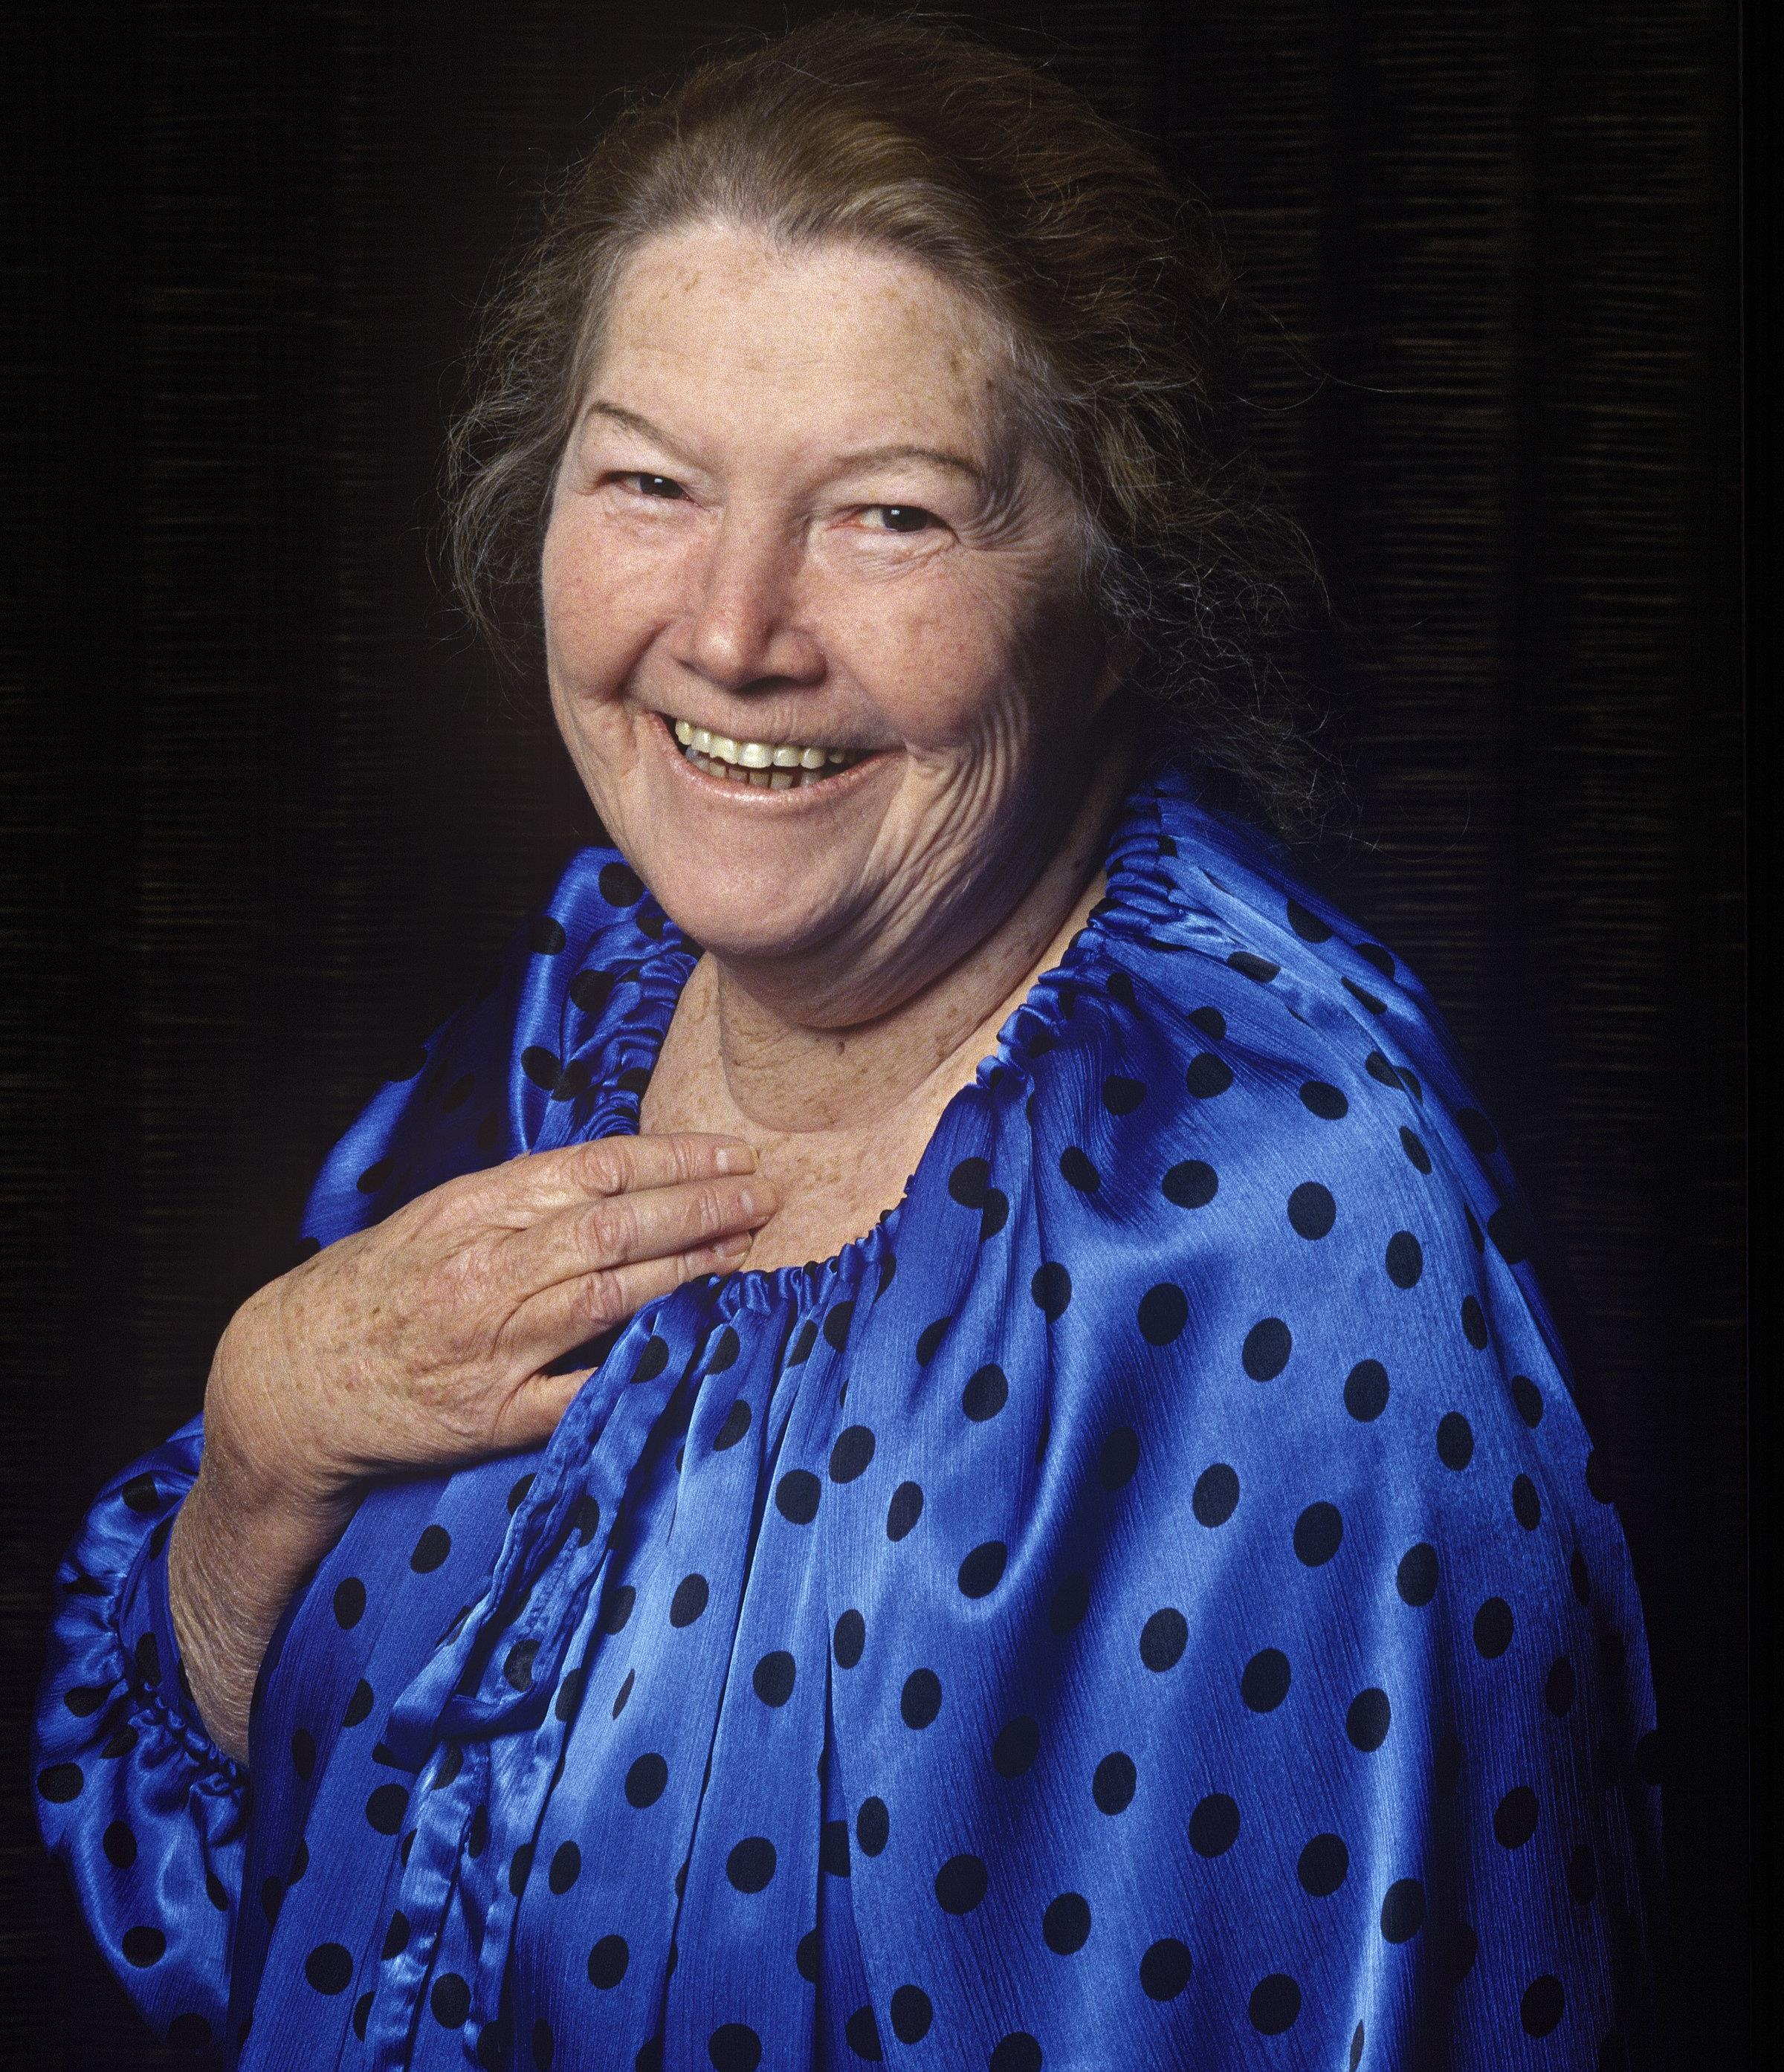 Image: Australian Author Colleen McCullough